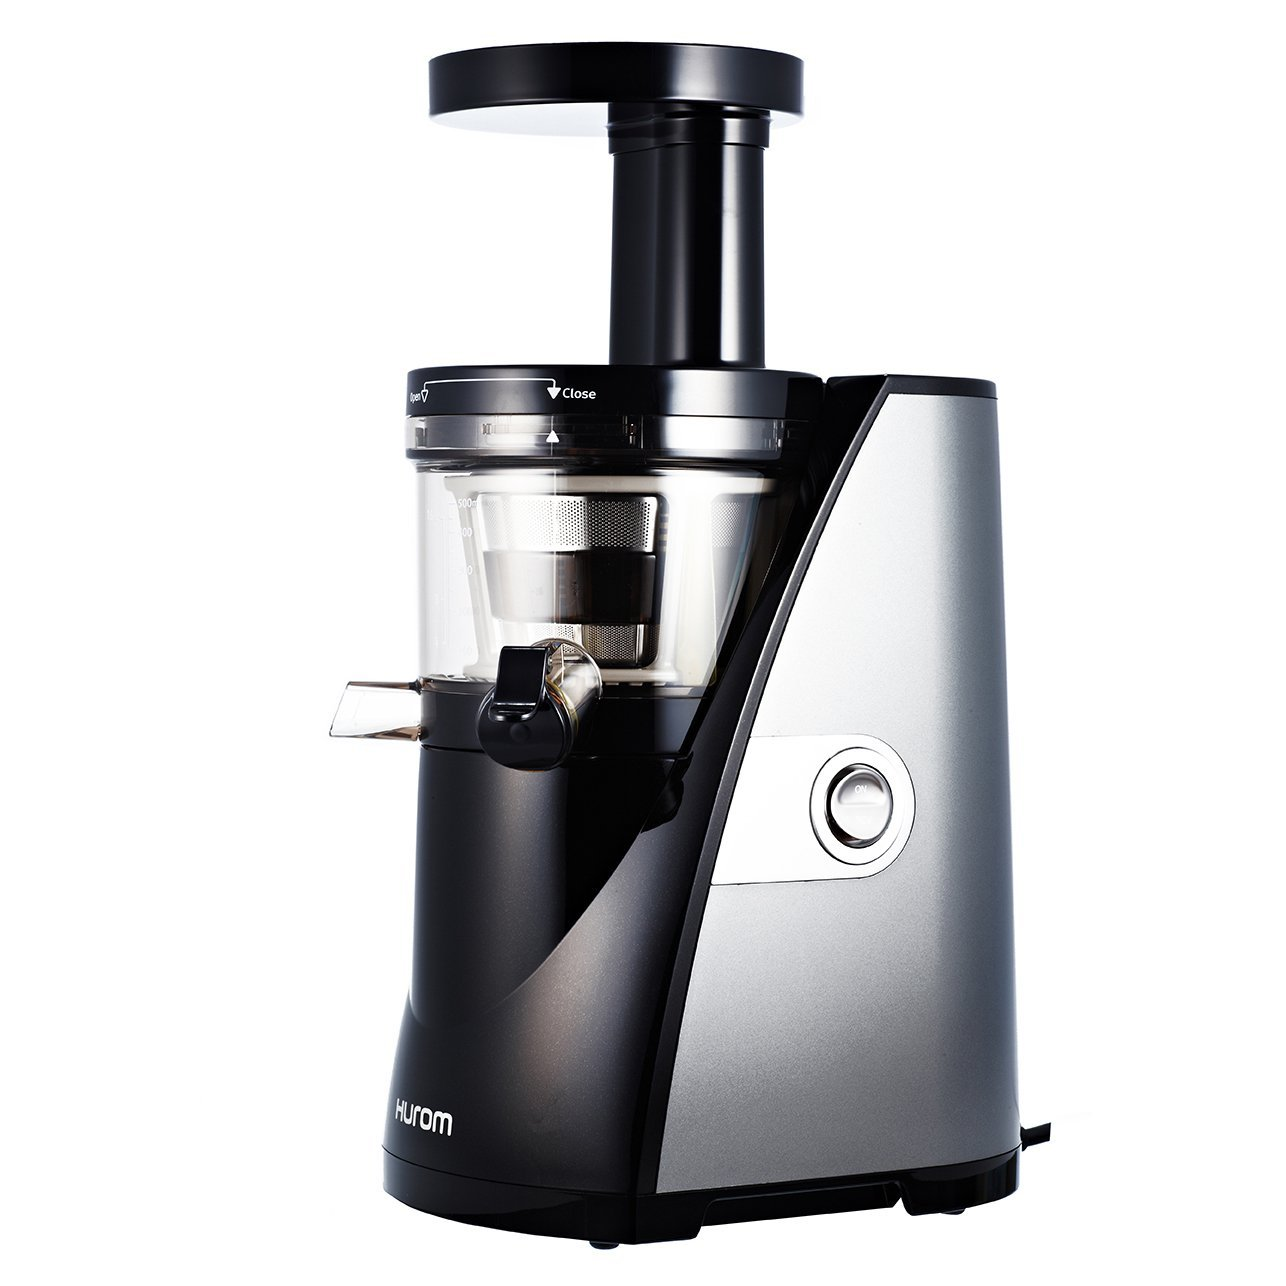 Hurom Slow Juicer Vs Breville : 5 Best Hurom Juicer Reviews UPDATED: 2018 The Home Savant